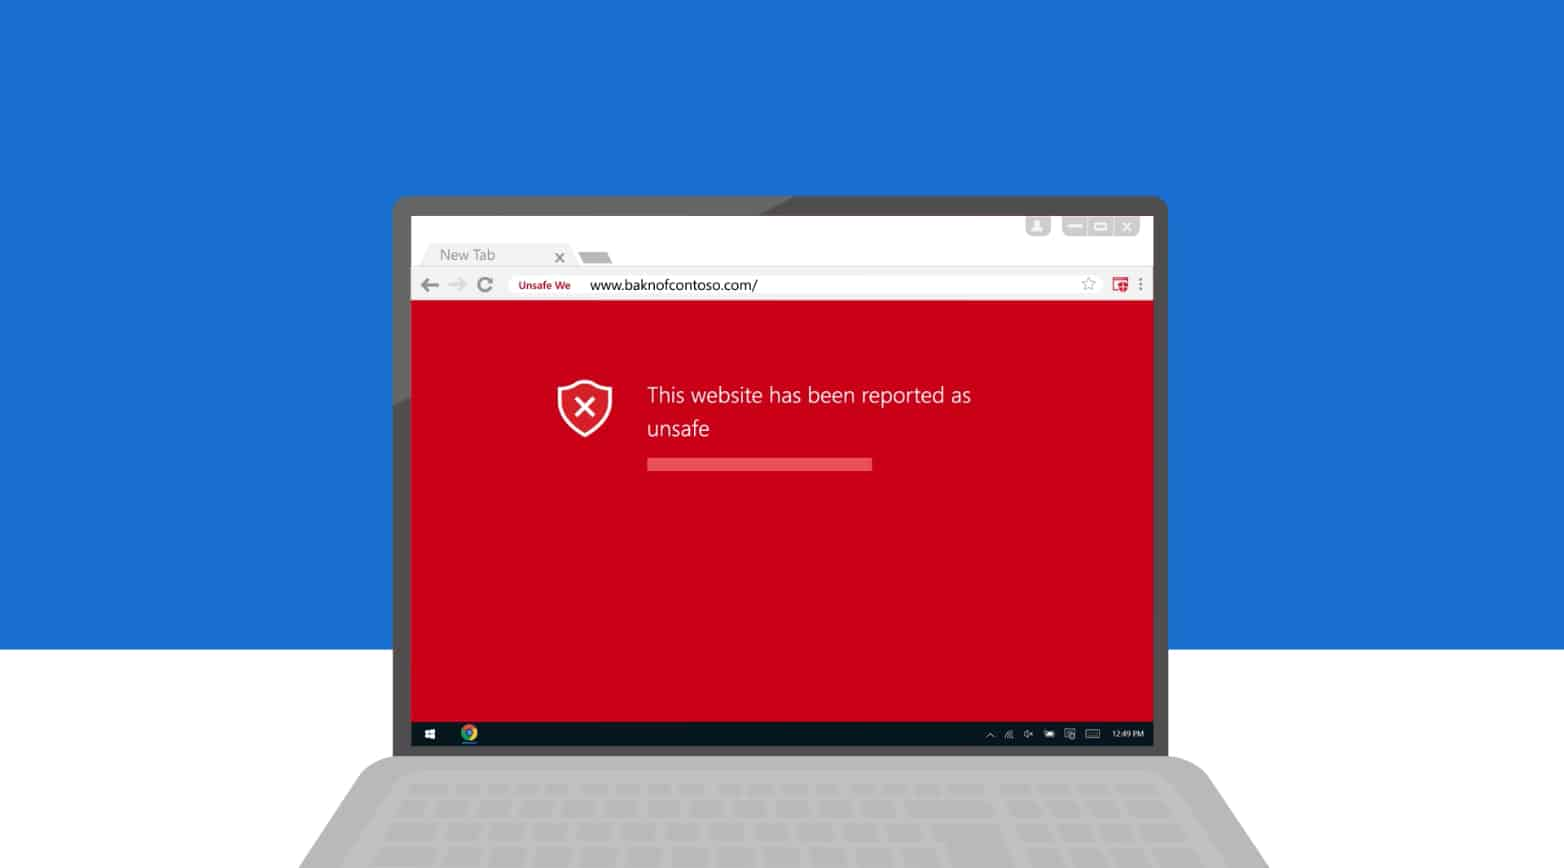 Windows Defender Google Chrome